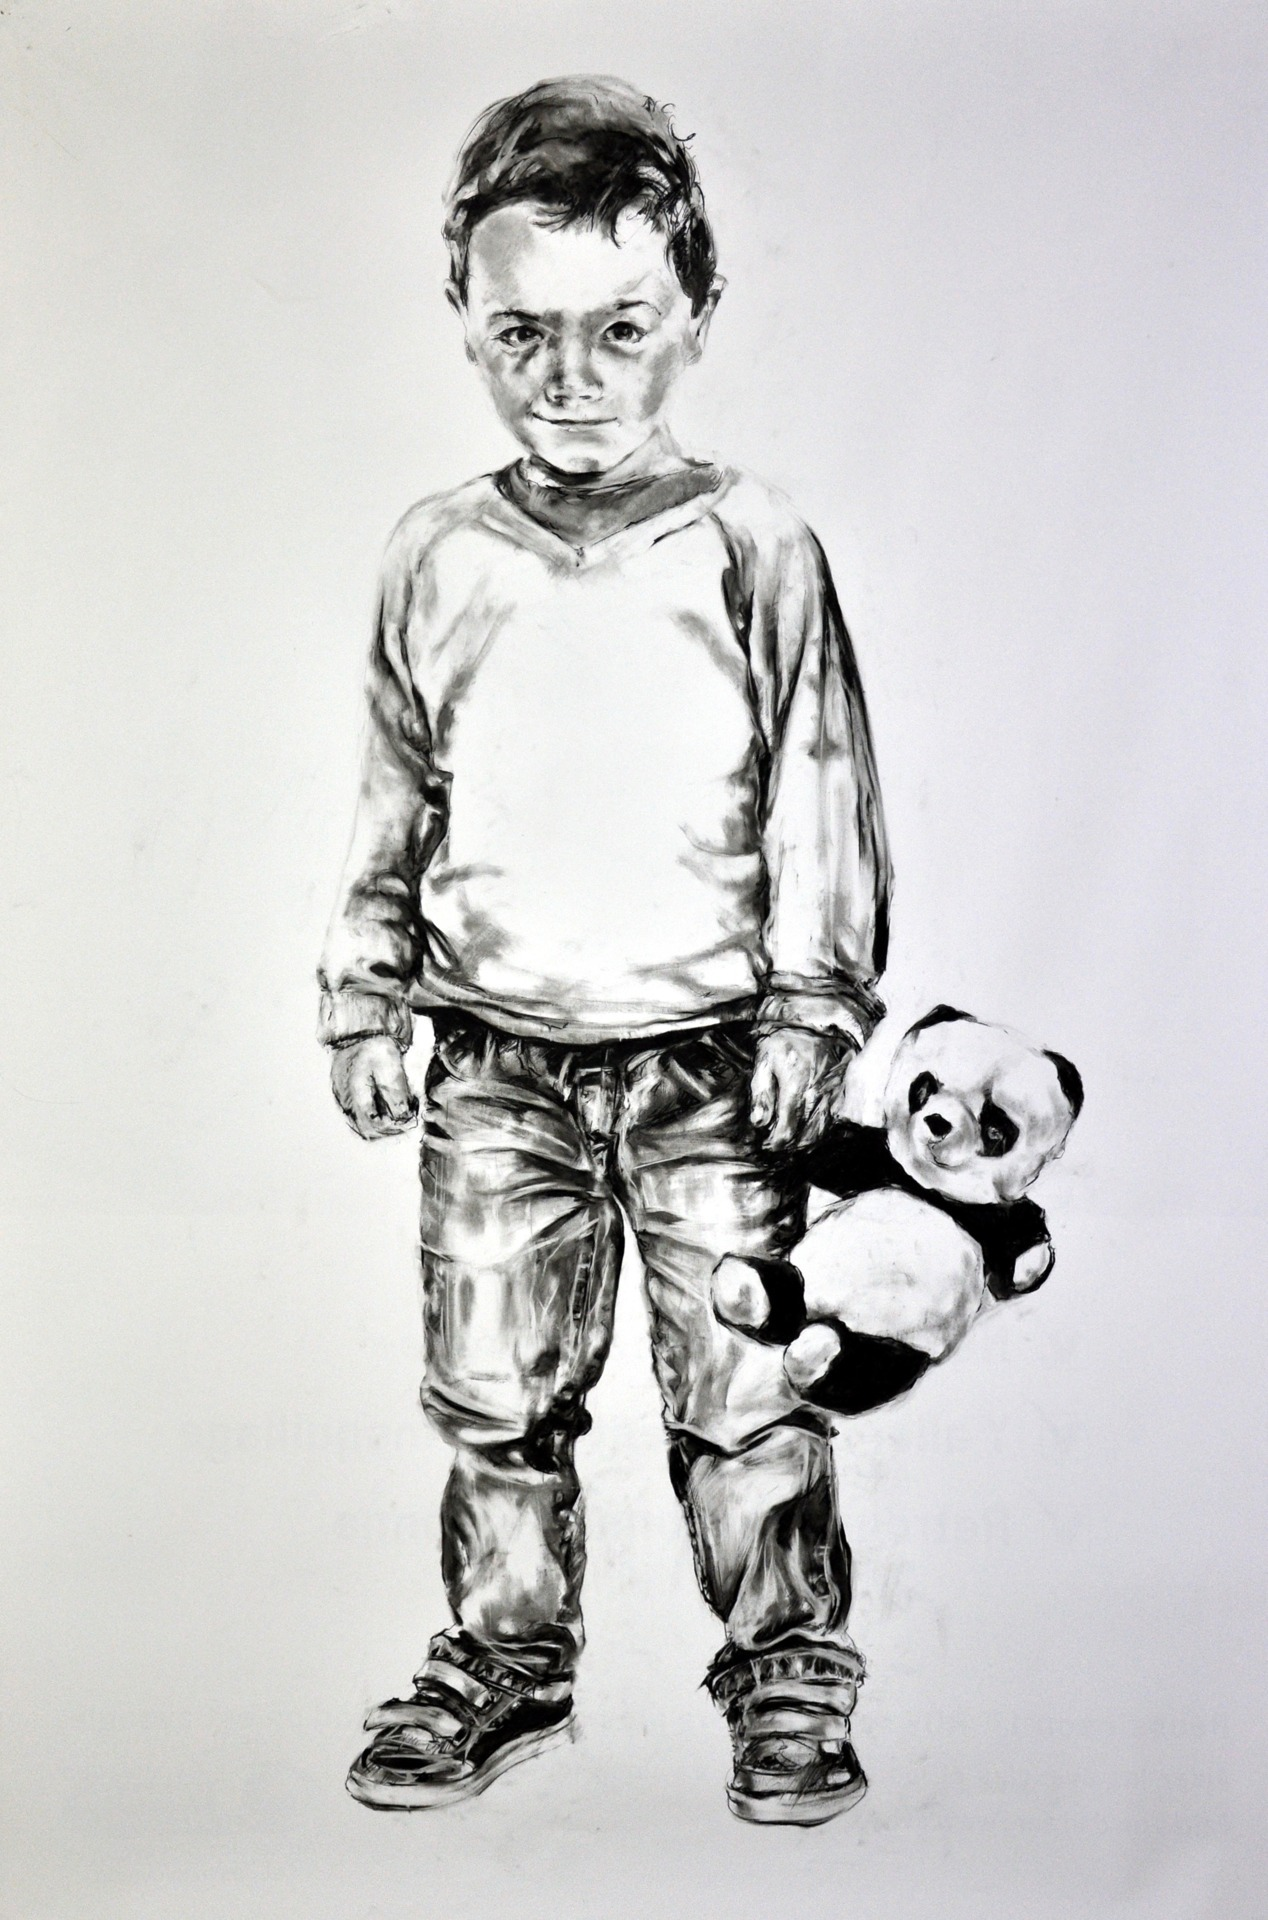 Frank Rannou, 'Marceau', Pencil on paper